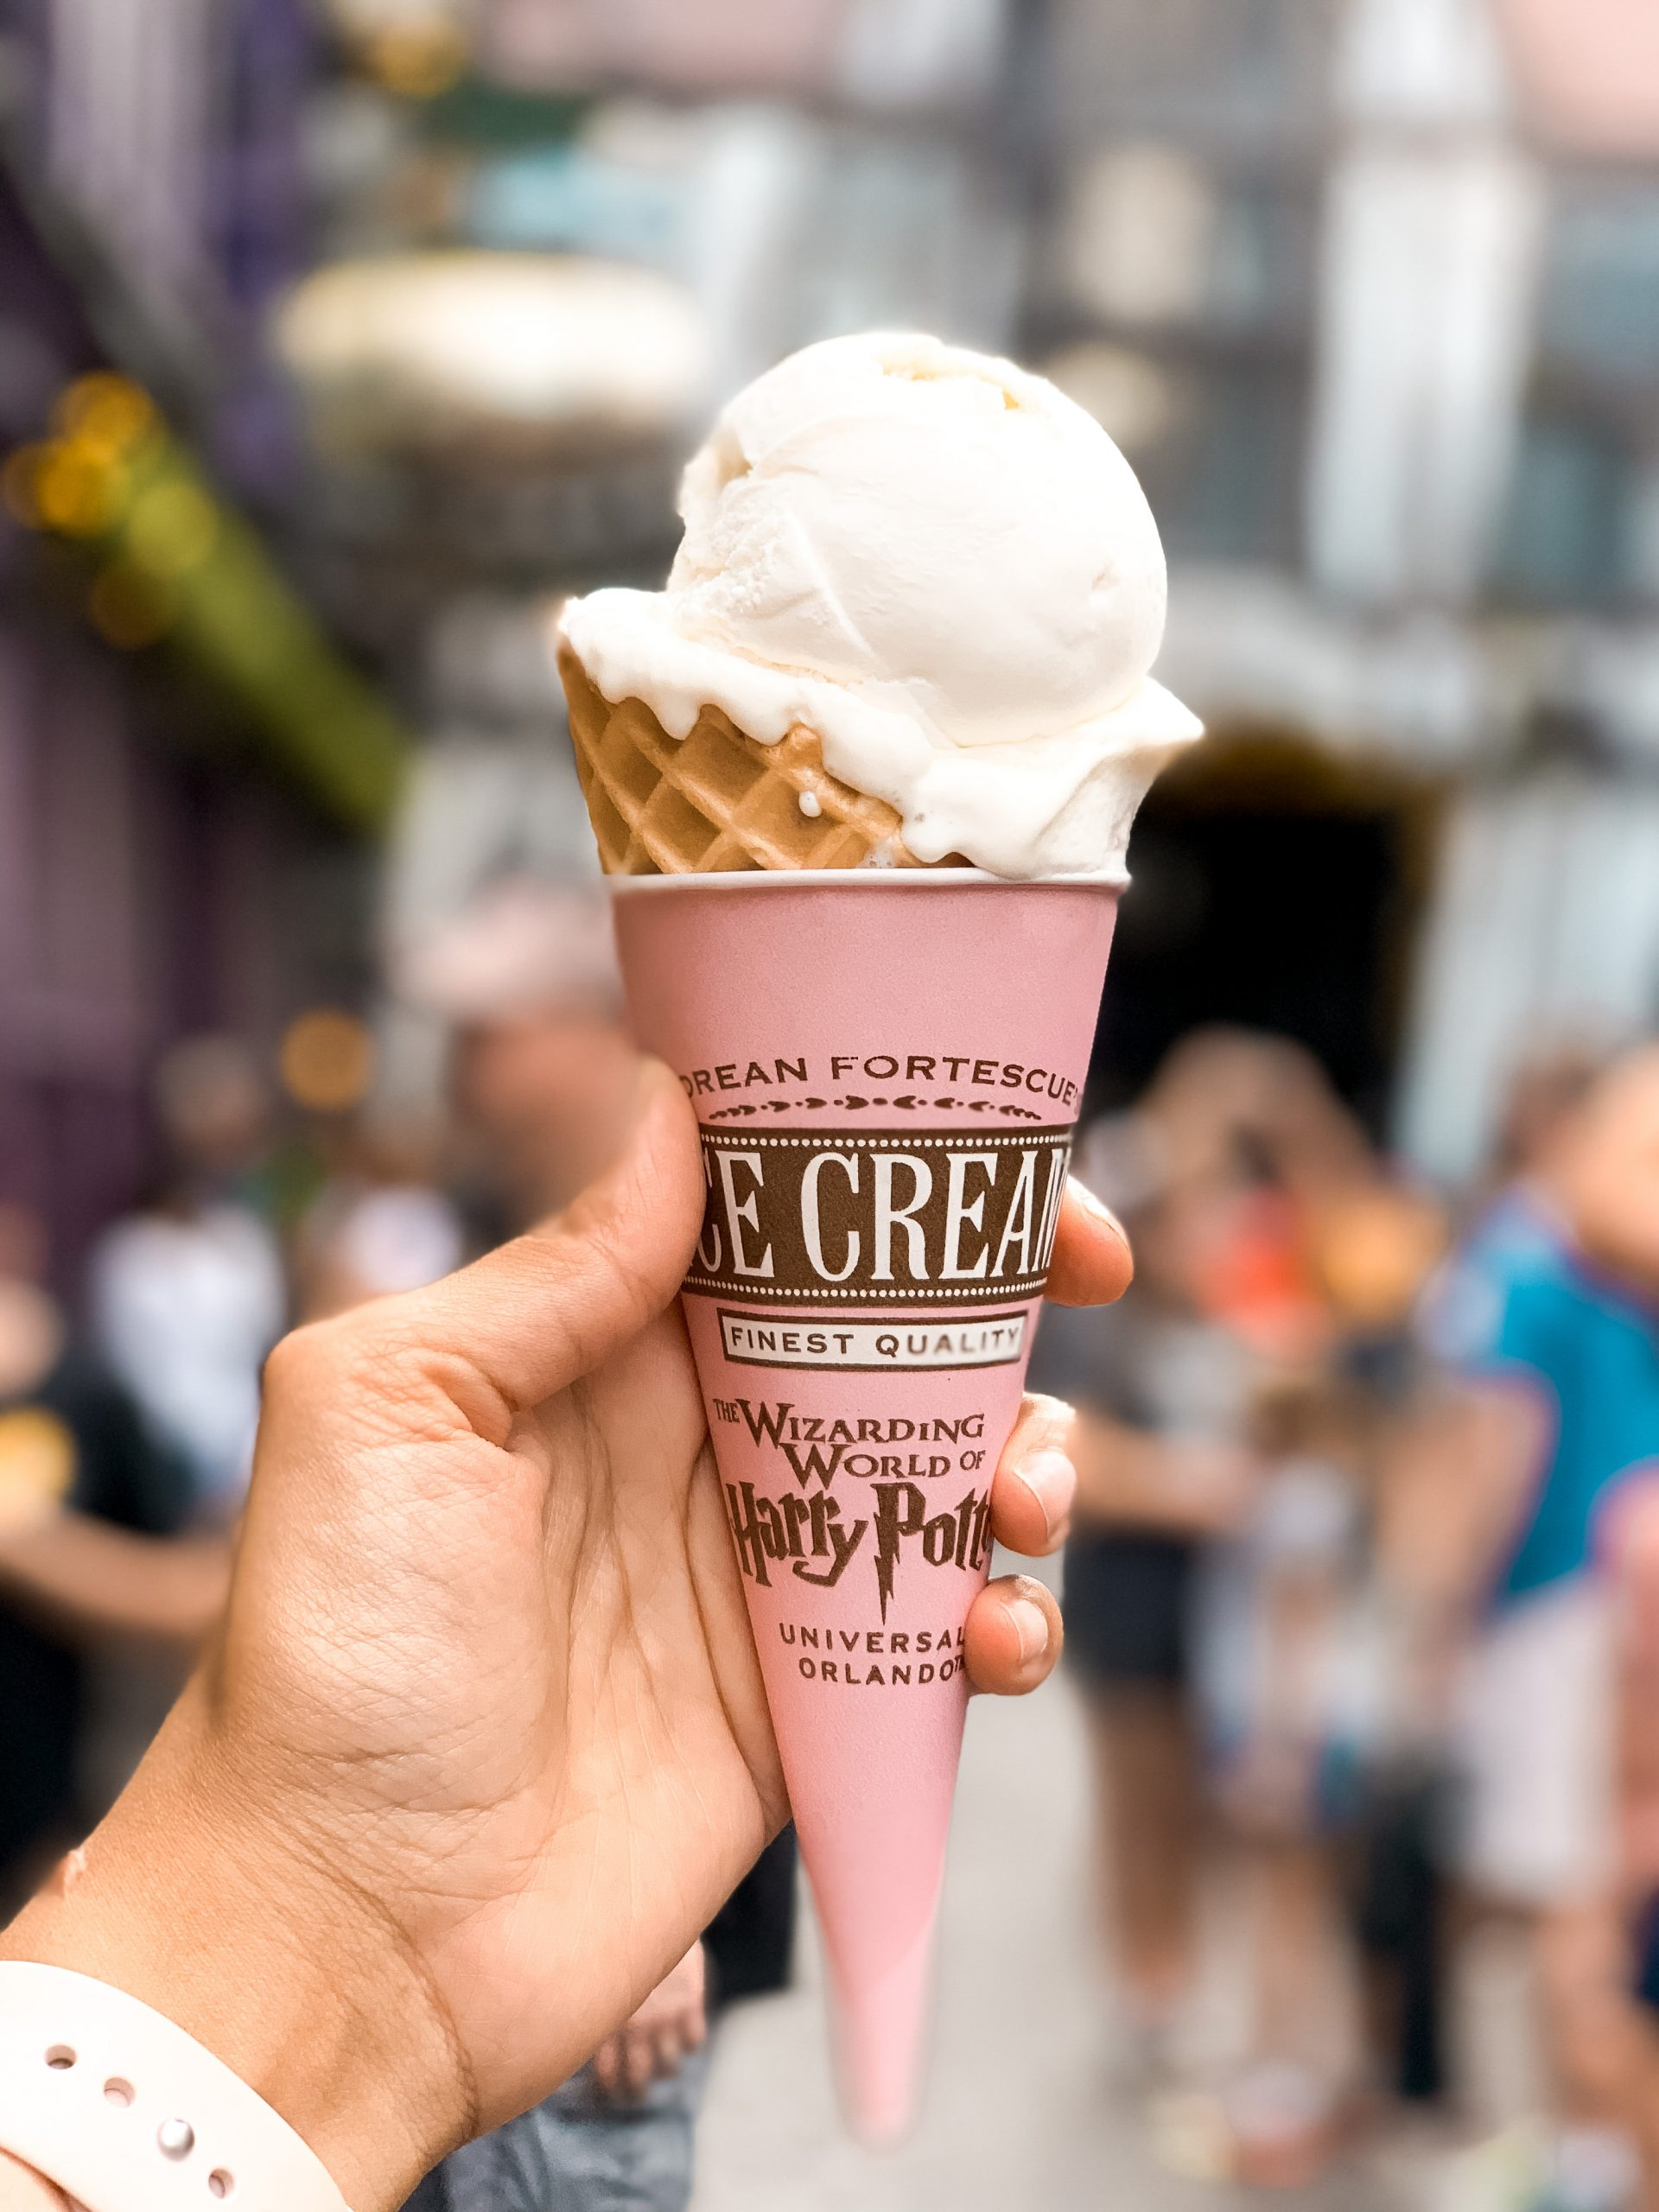 Florean Fortescue's ice cream at the Wizarding World of Harry Potter Universal Orlando